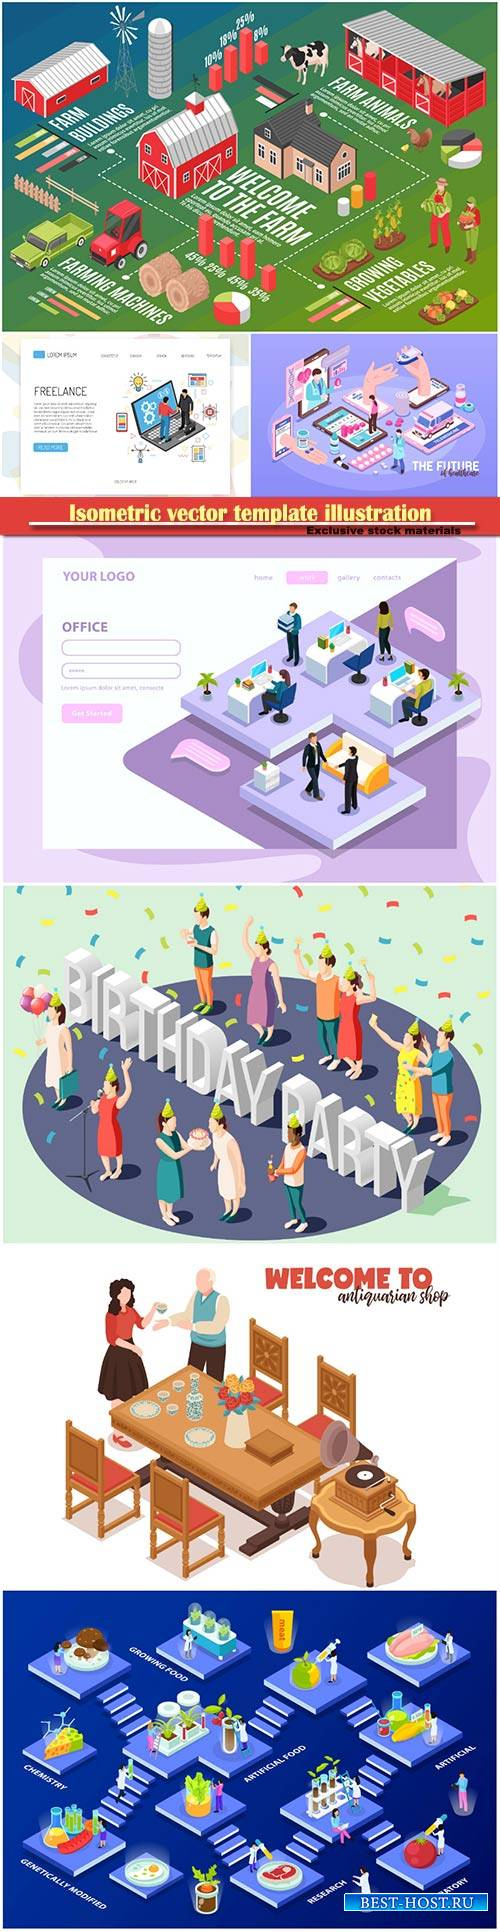 Isometric vector template illustration # 43